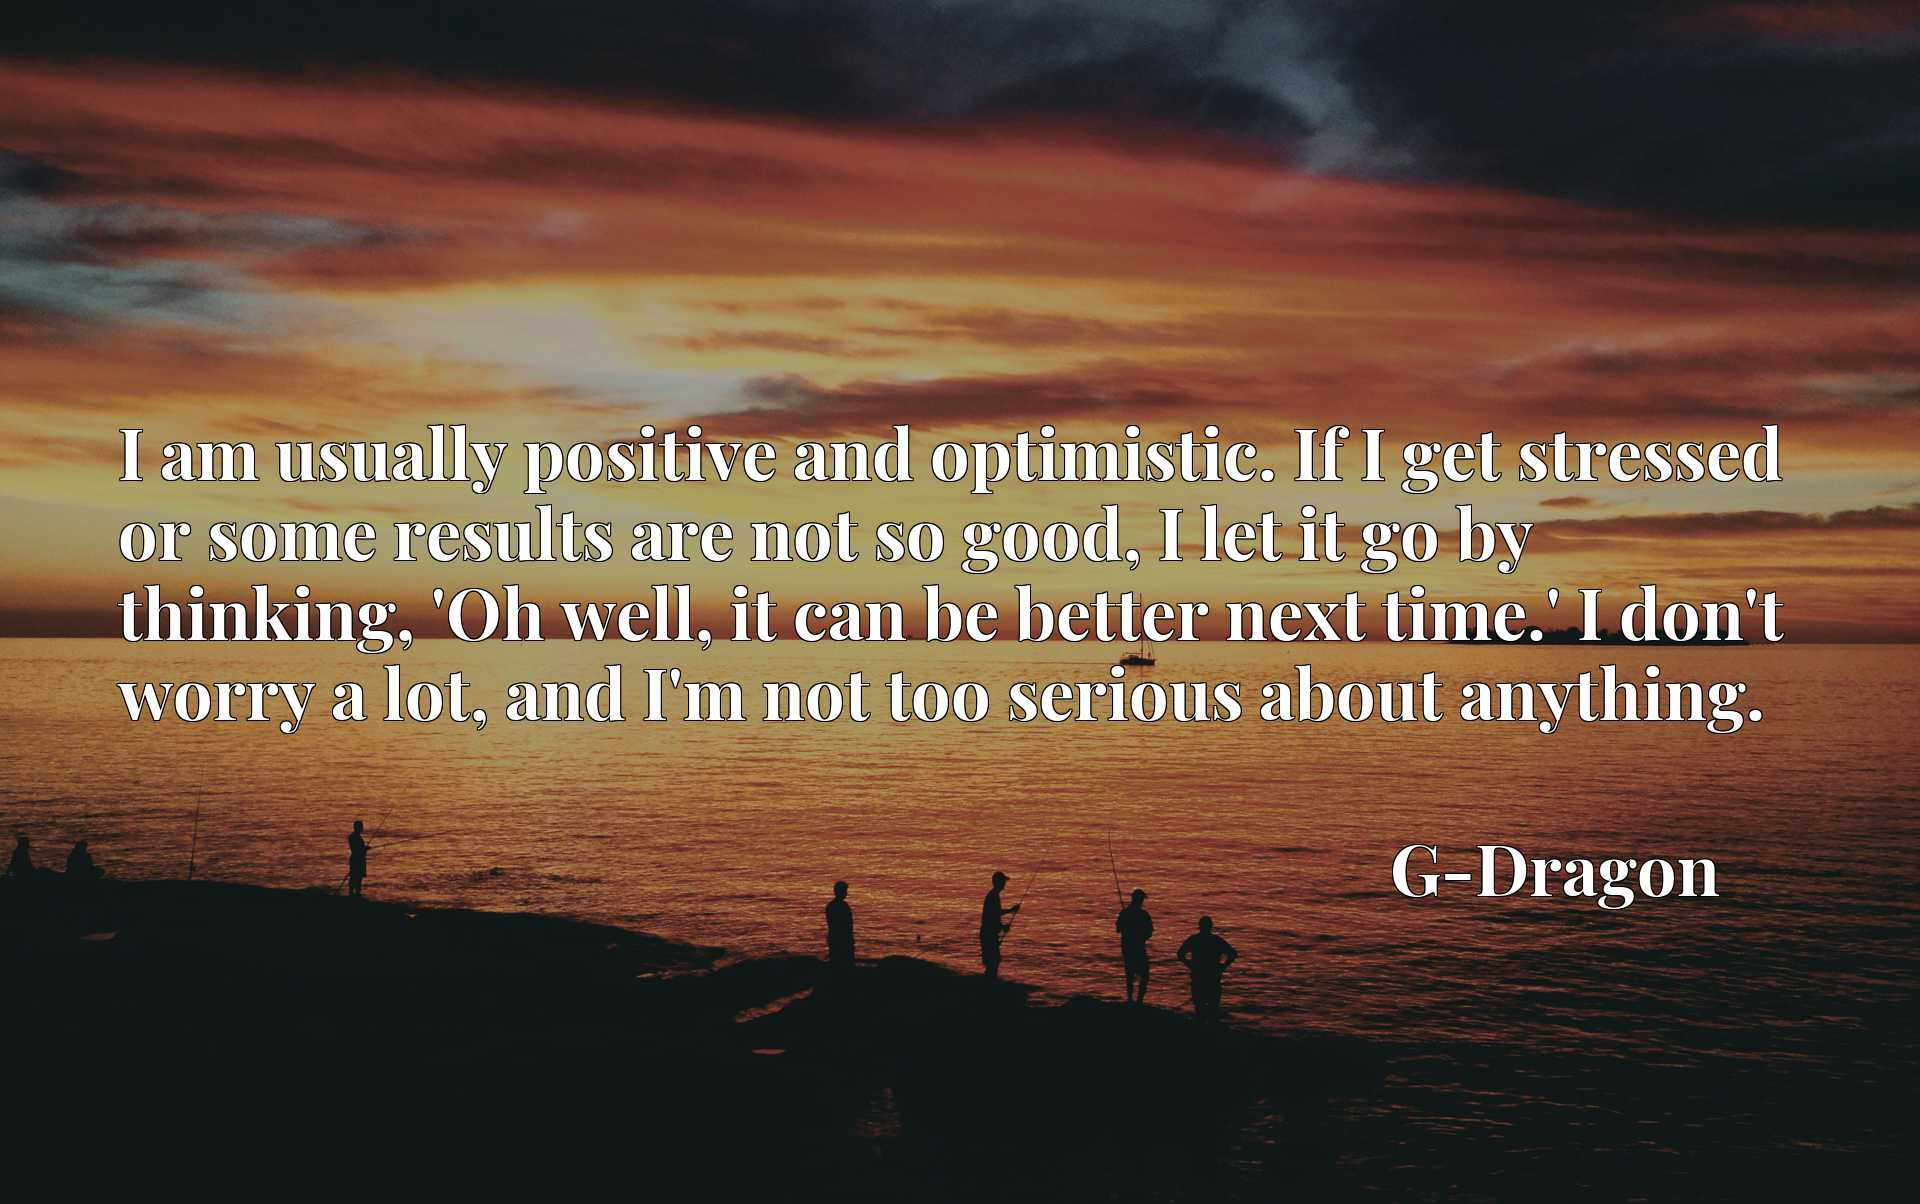 I am usually positive and optimistic. If I get stressed or some results are not so good, I let it go by thinking, 'Oh well, it can be better next time.' I don't worry a lot, and I'm not too serious about anything.